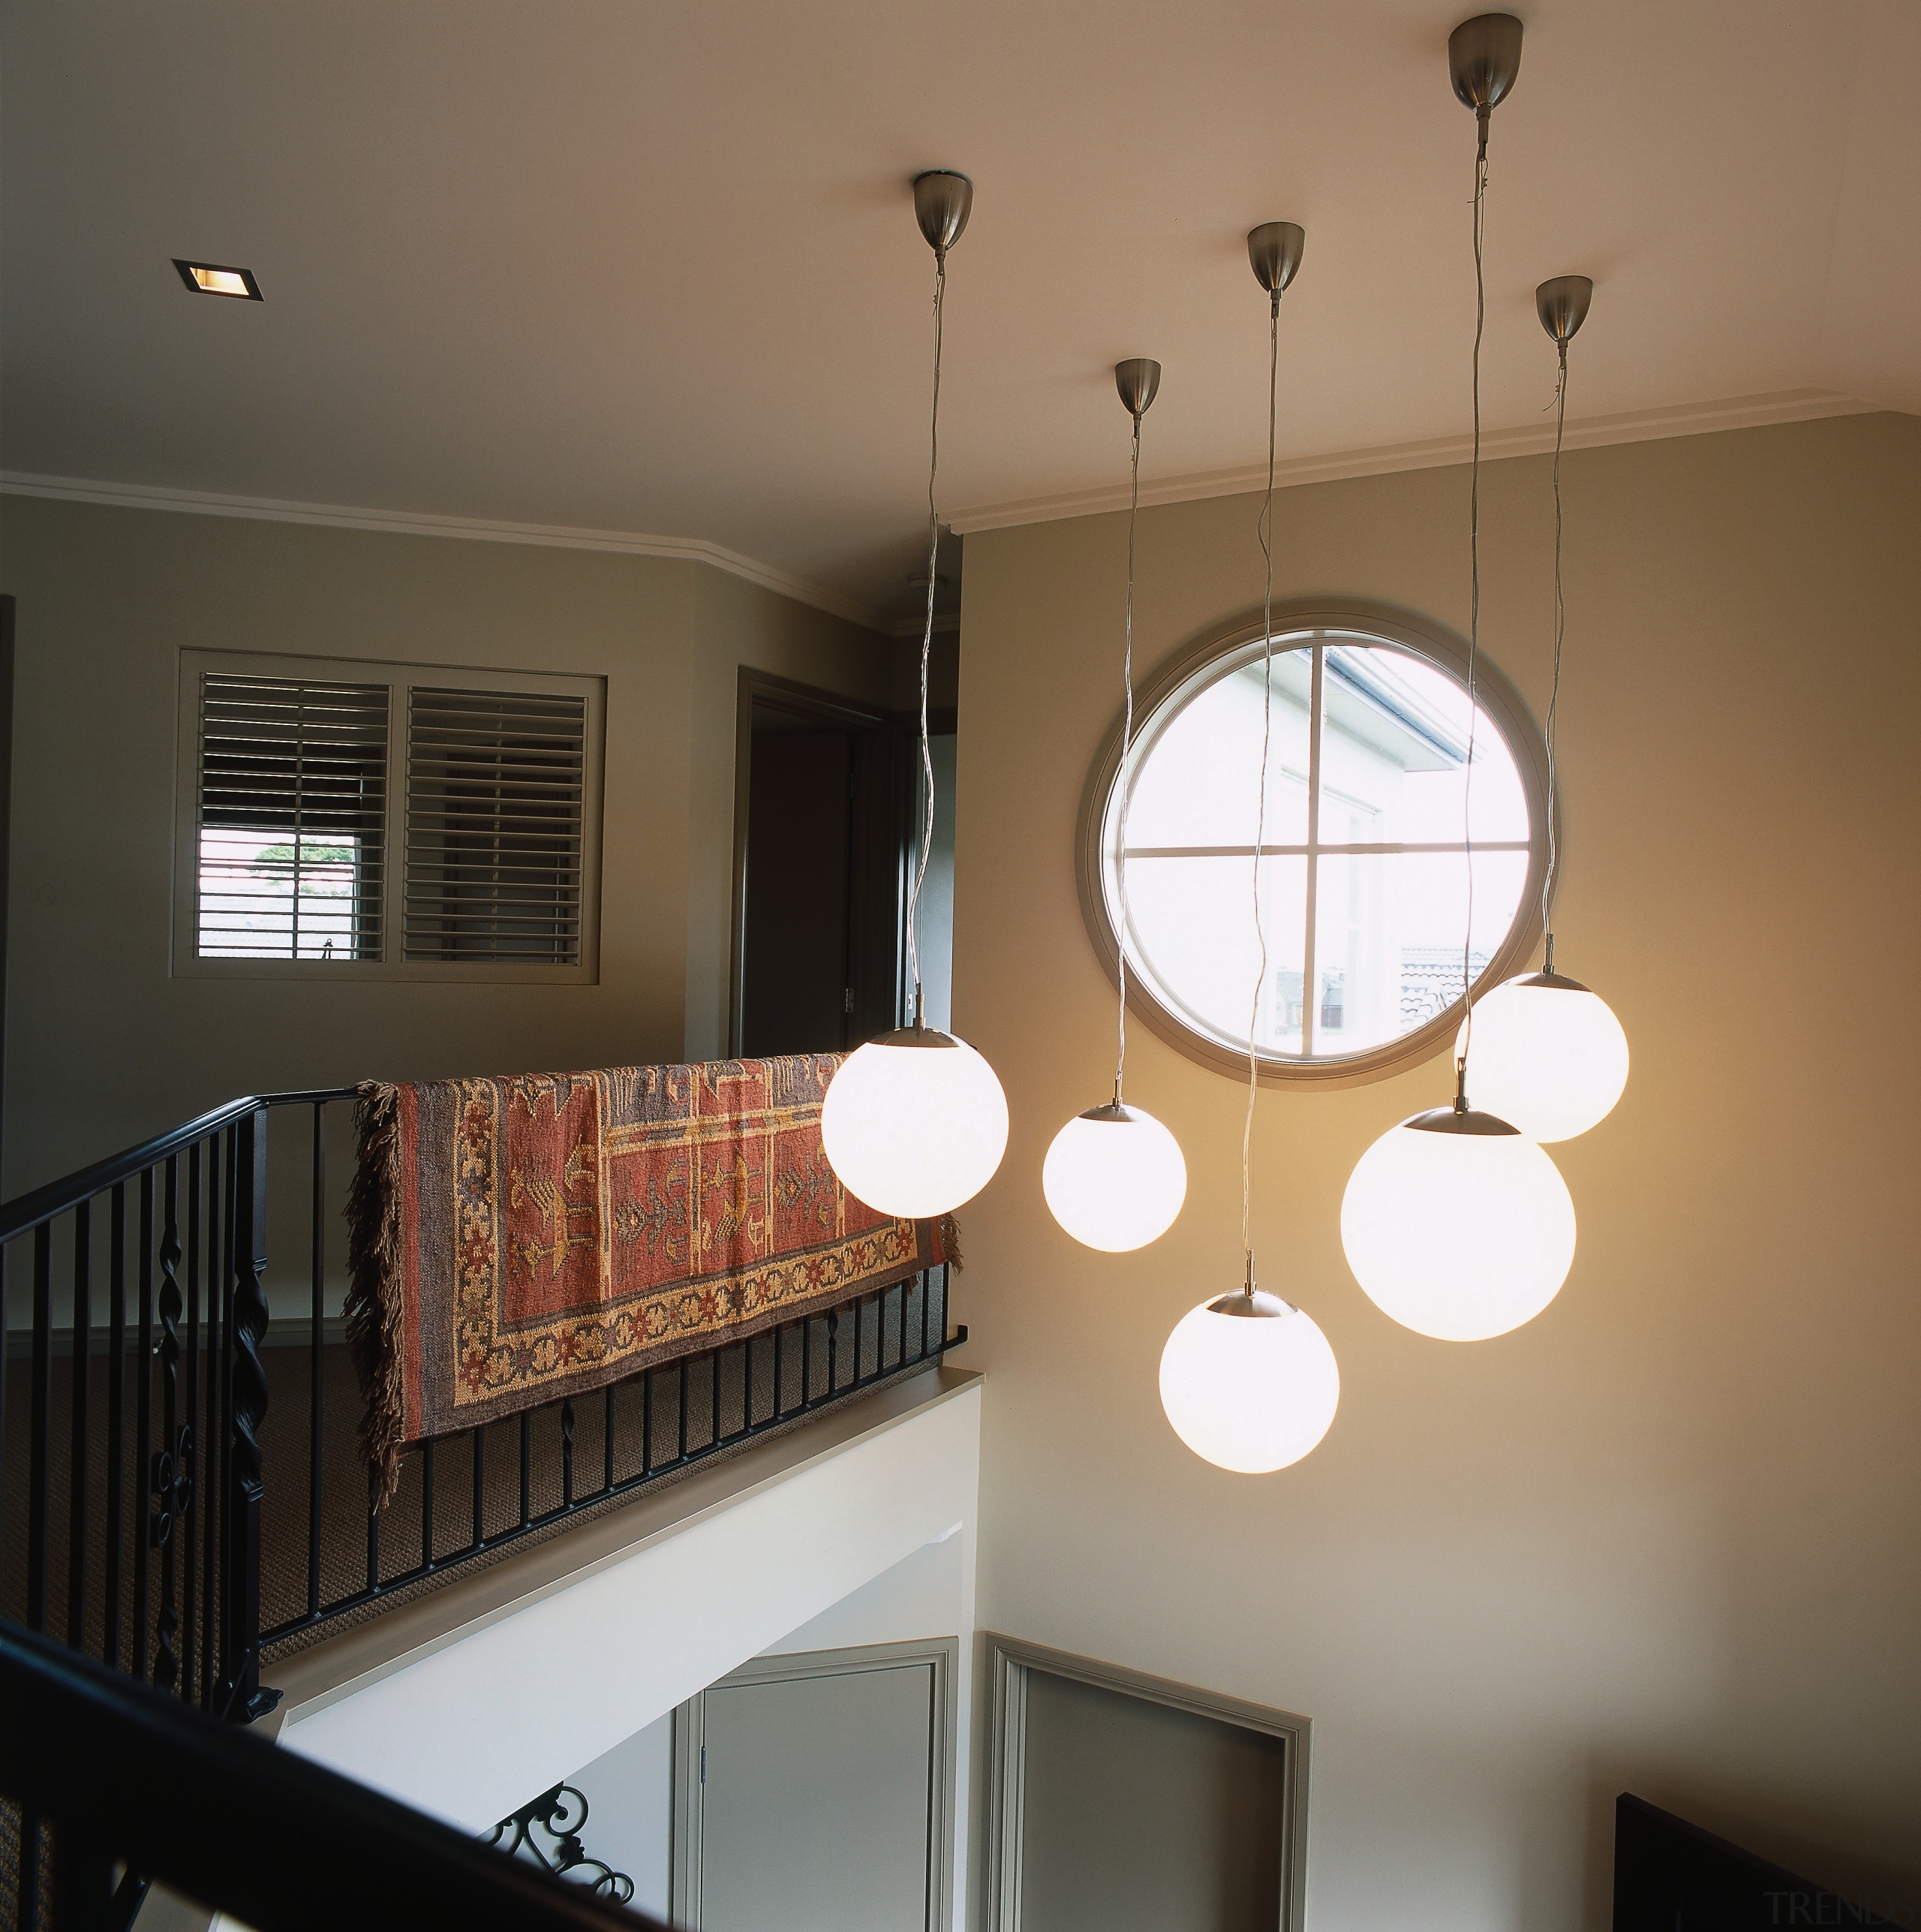 View of the lighting from lighting direct limited ceiling chandelier daylighting home